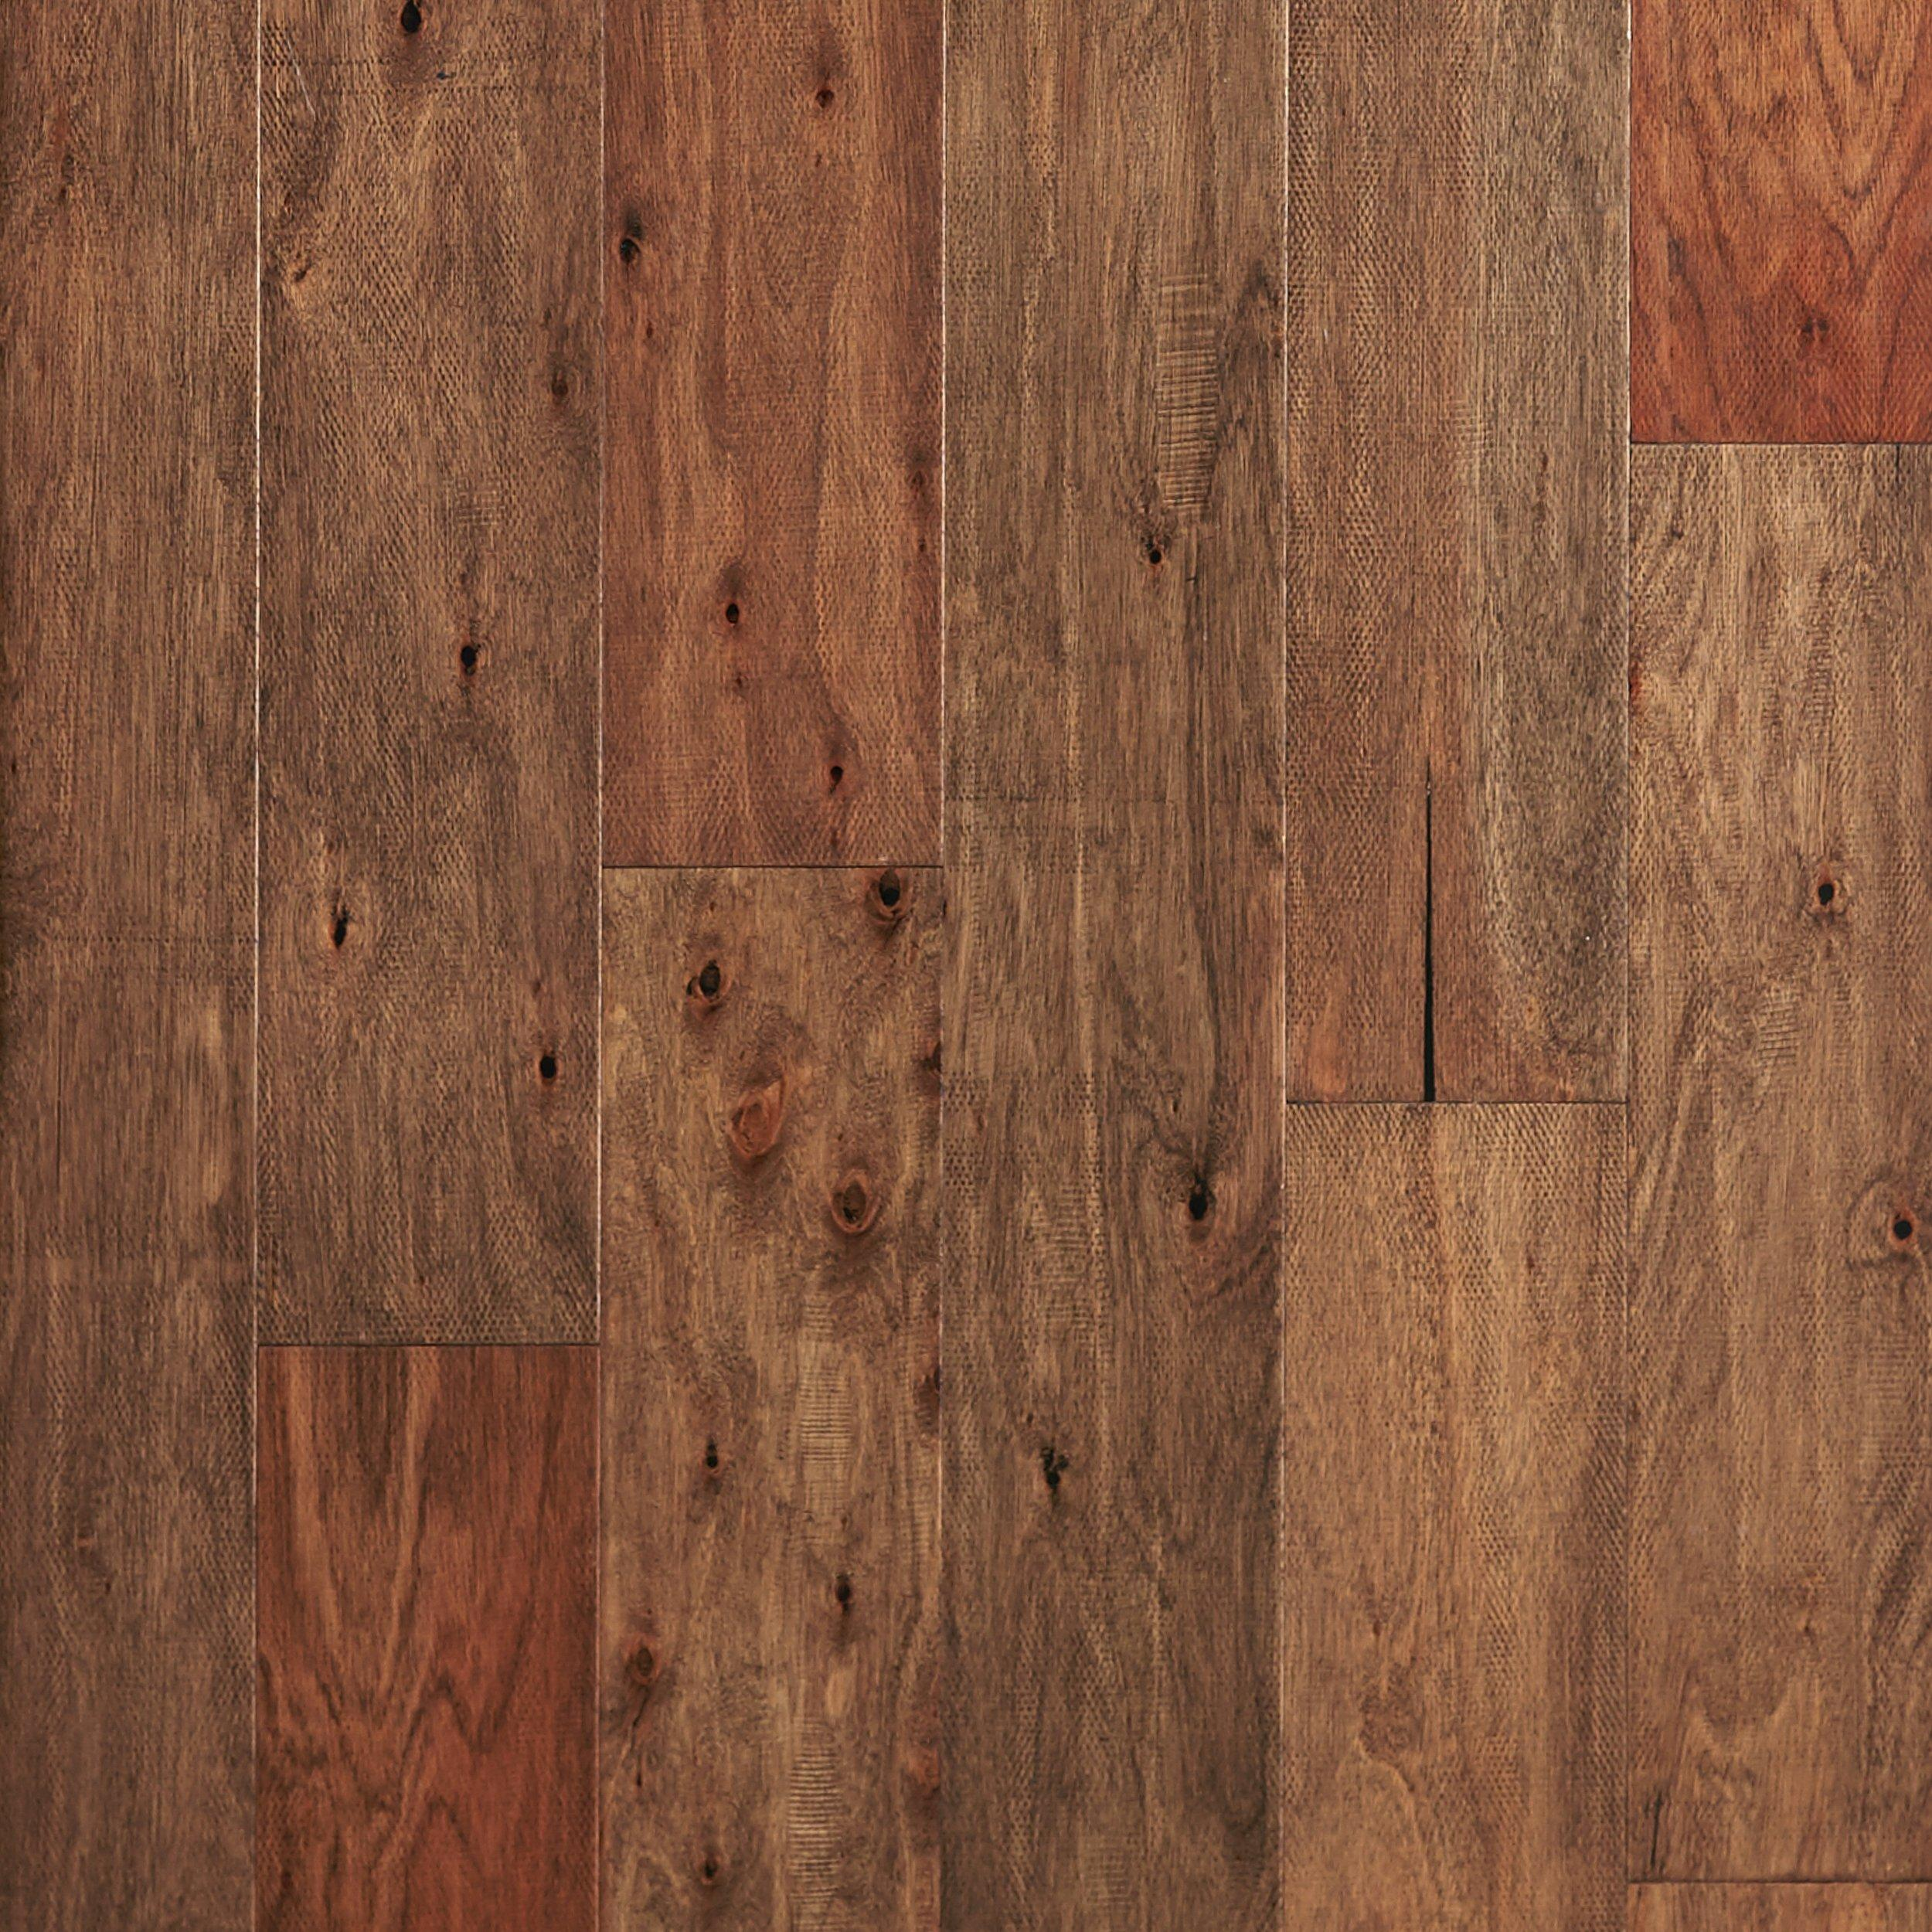 Hand Scraped Engineered Hardwood Flooring laying the hardwood floors and finishing them after installation helps maintain the woods natural characteristics as well as providing a uniform and Driftwood Eucalyptus Hand Scraped Engineered Hardwood